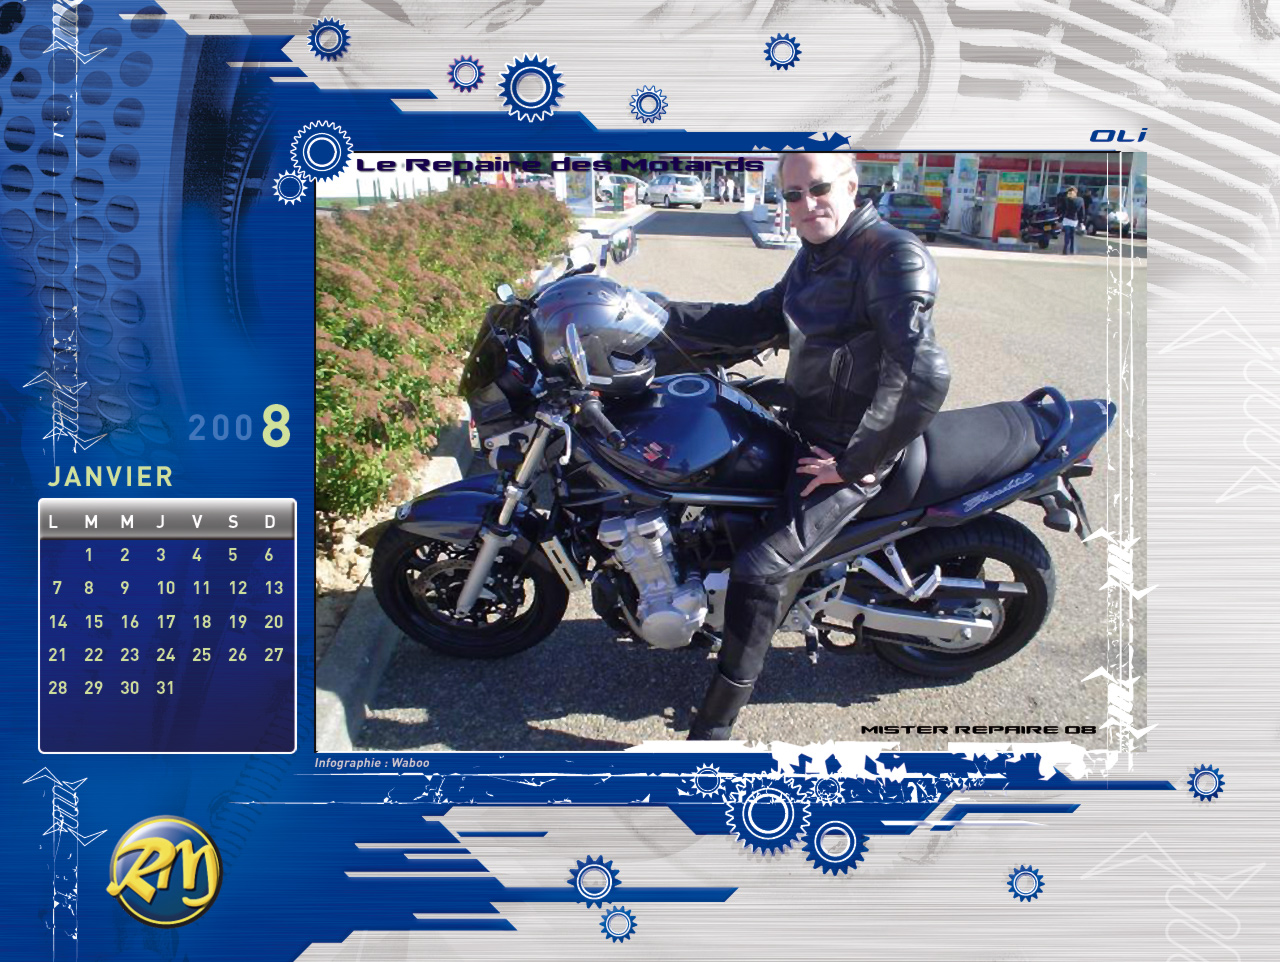 le calendrier 2008 du repaire des motards. Black Bedroom Furniture Sets. Home Design Ideas